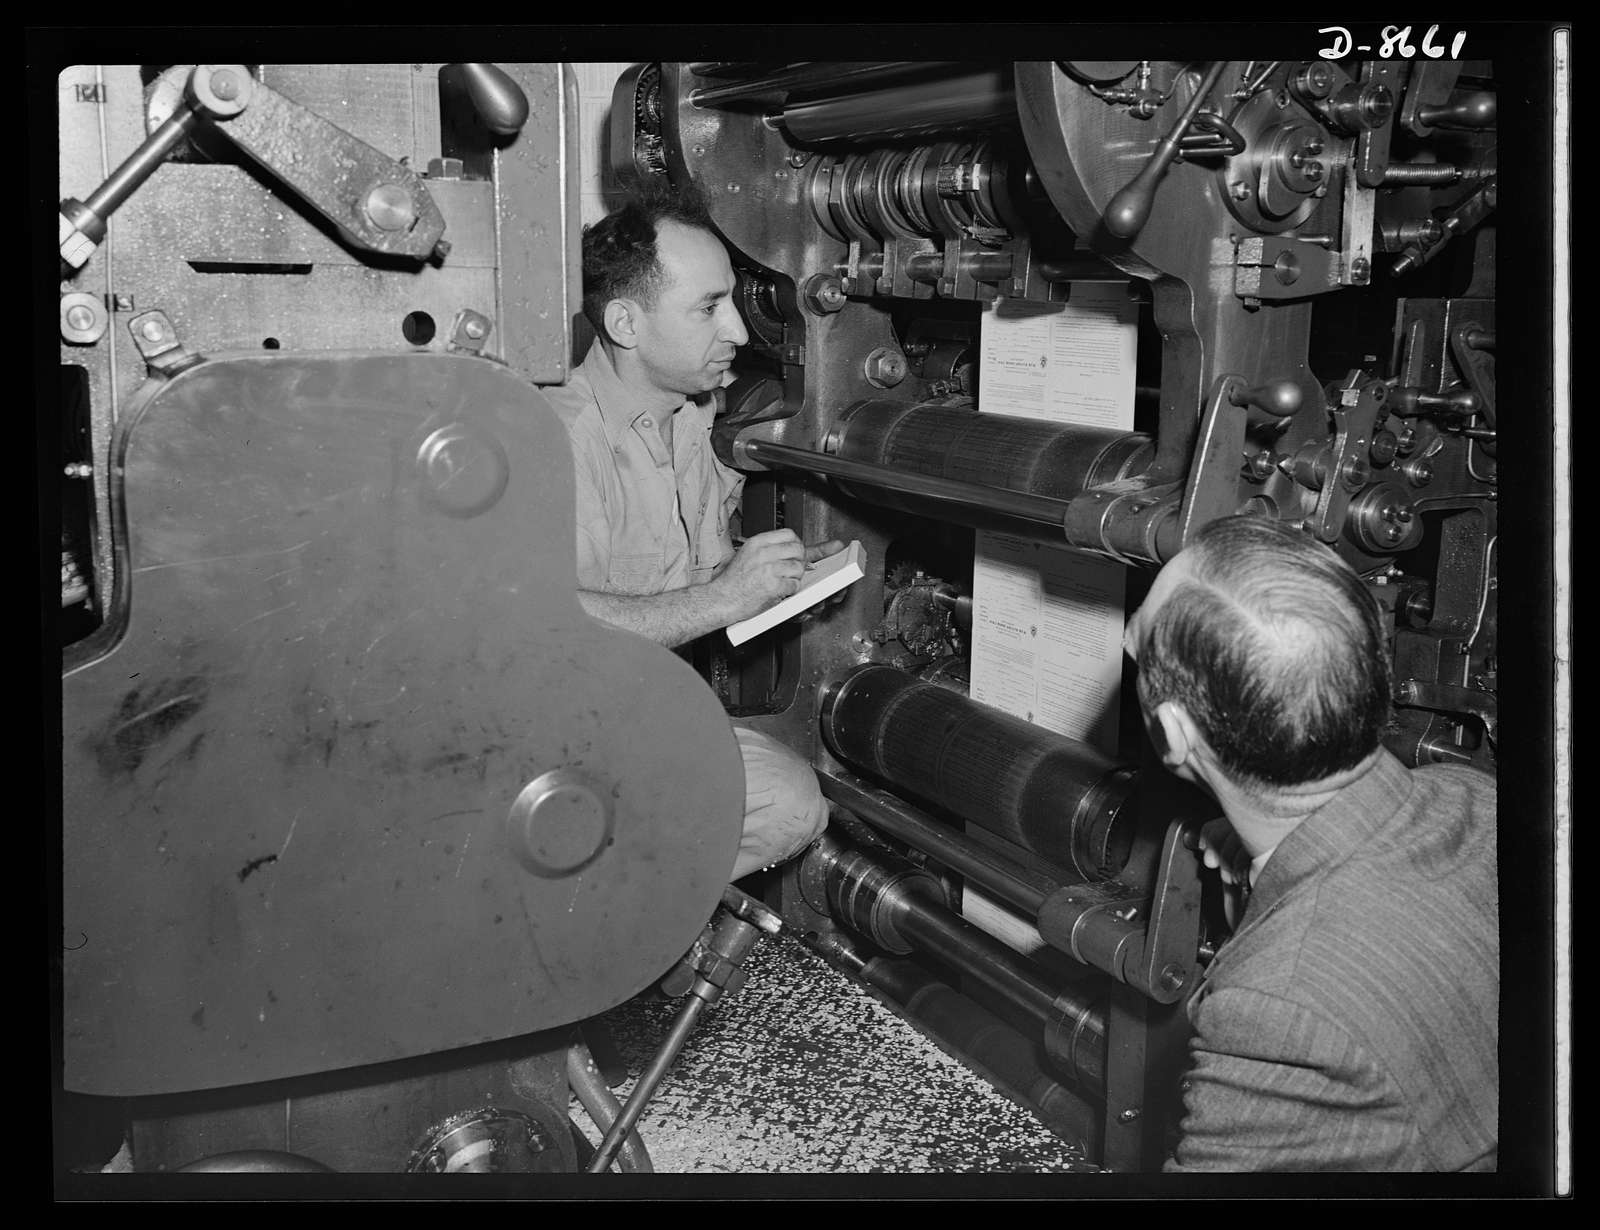 Printing war ration book 2. Covers for war ration book 2 roll from the press at a plant in Hoboken, New Jersey. The press is stopped as the ration book's serial number is checked